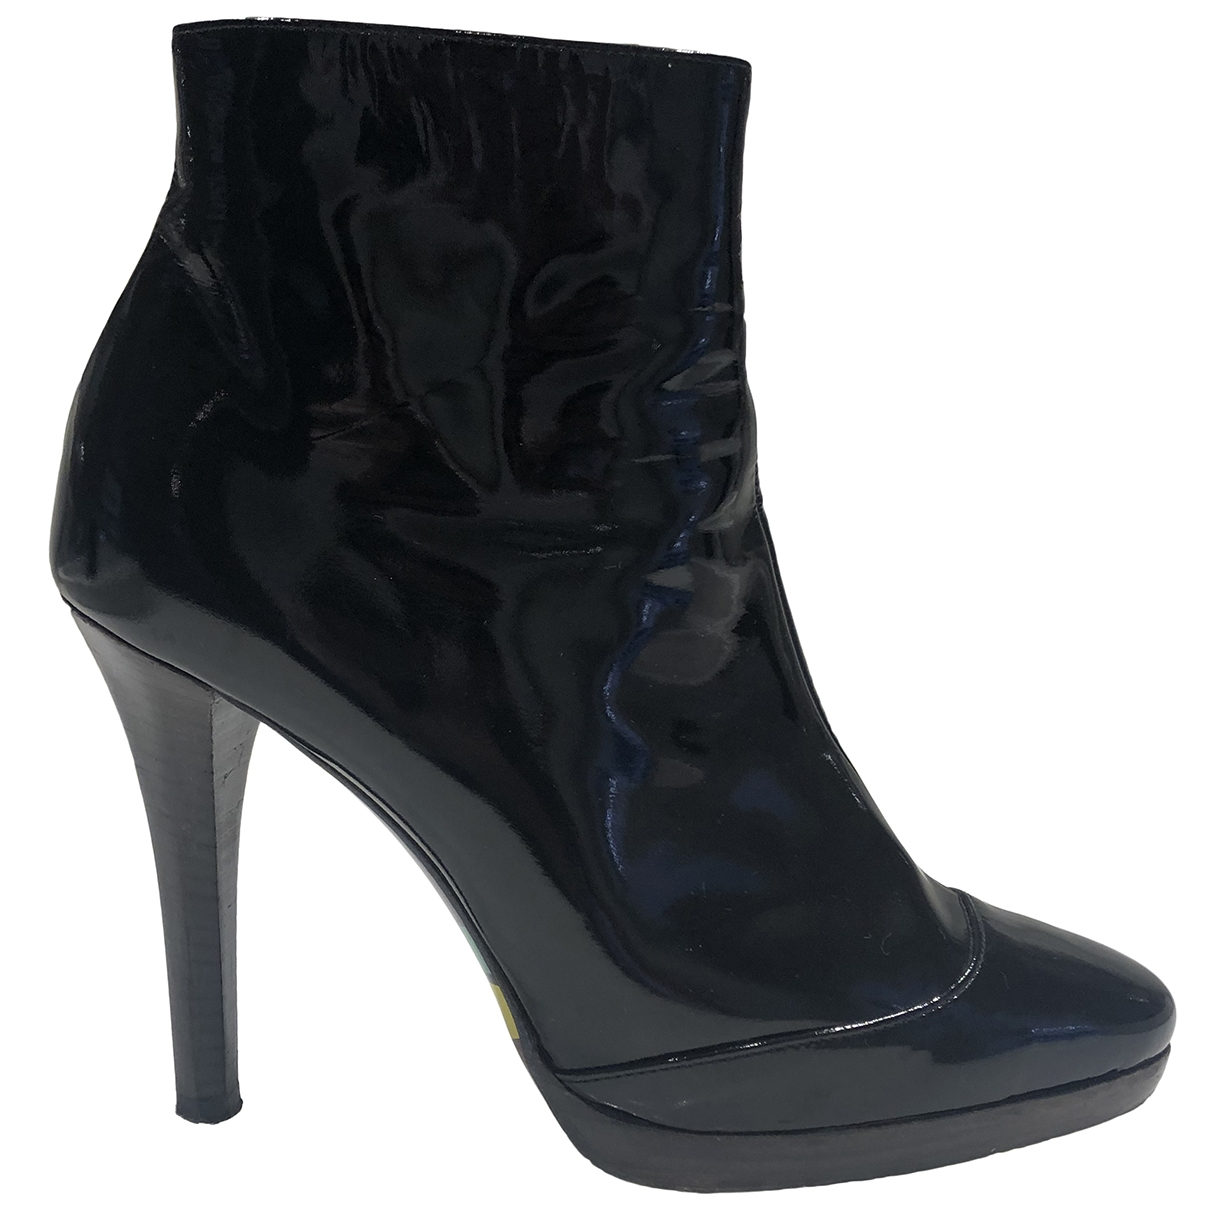 Emilio Pucci \N Black Patent leather Ankle boots for Women 38 IT